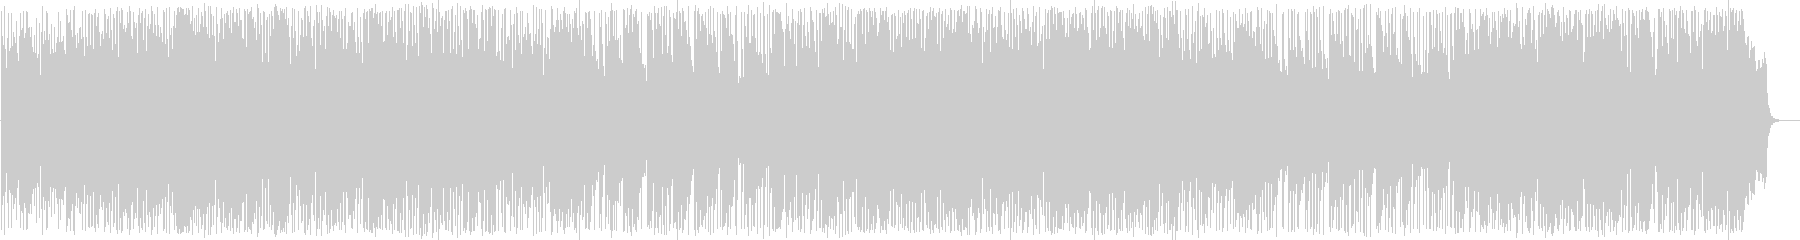 Bright fusion-style instrumental song's unreproduced waveform